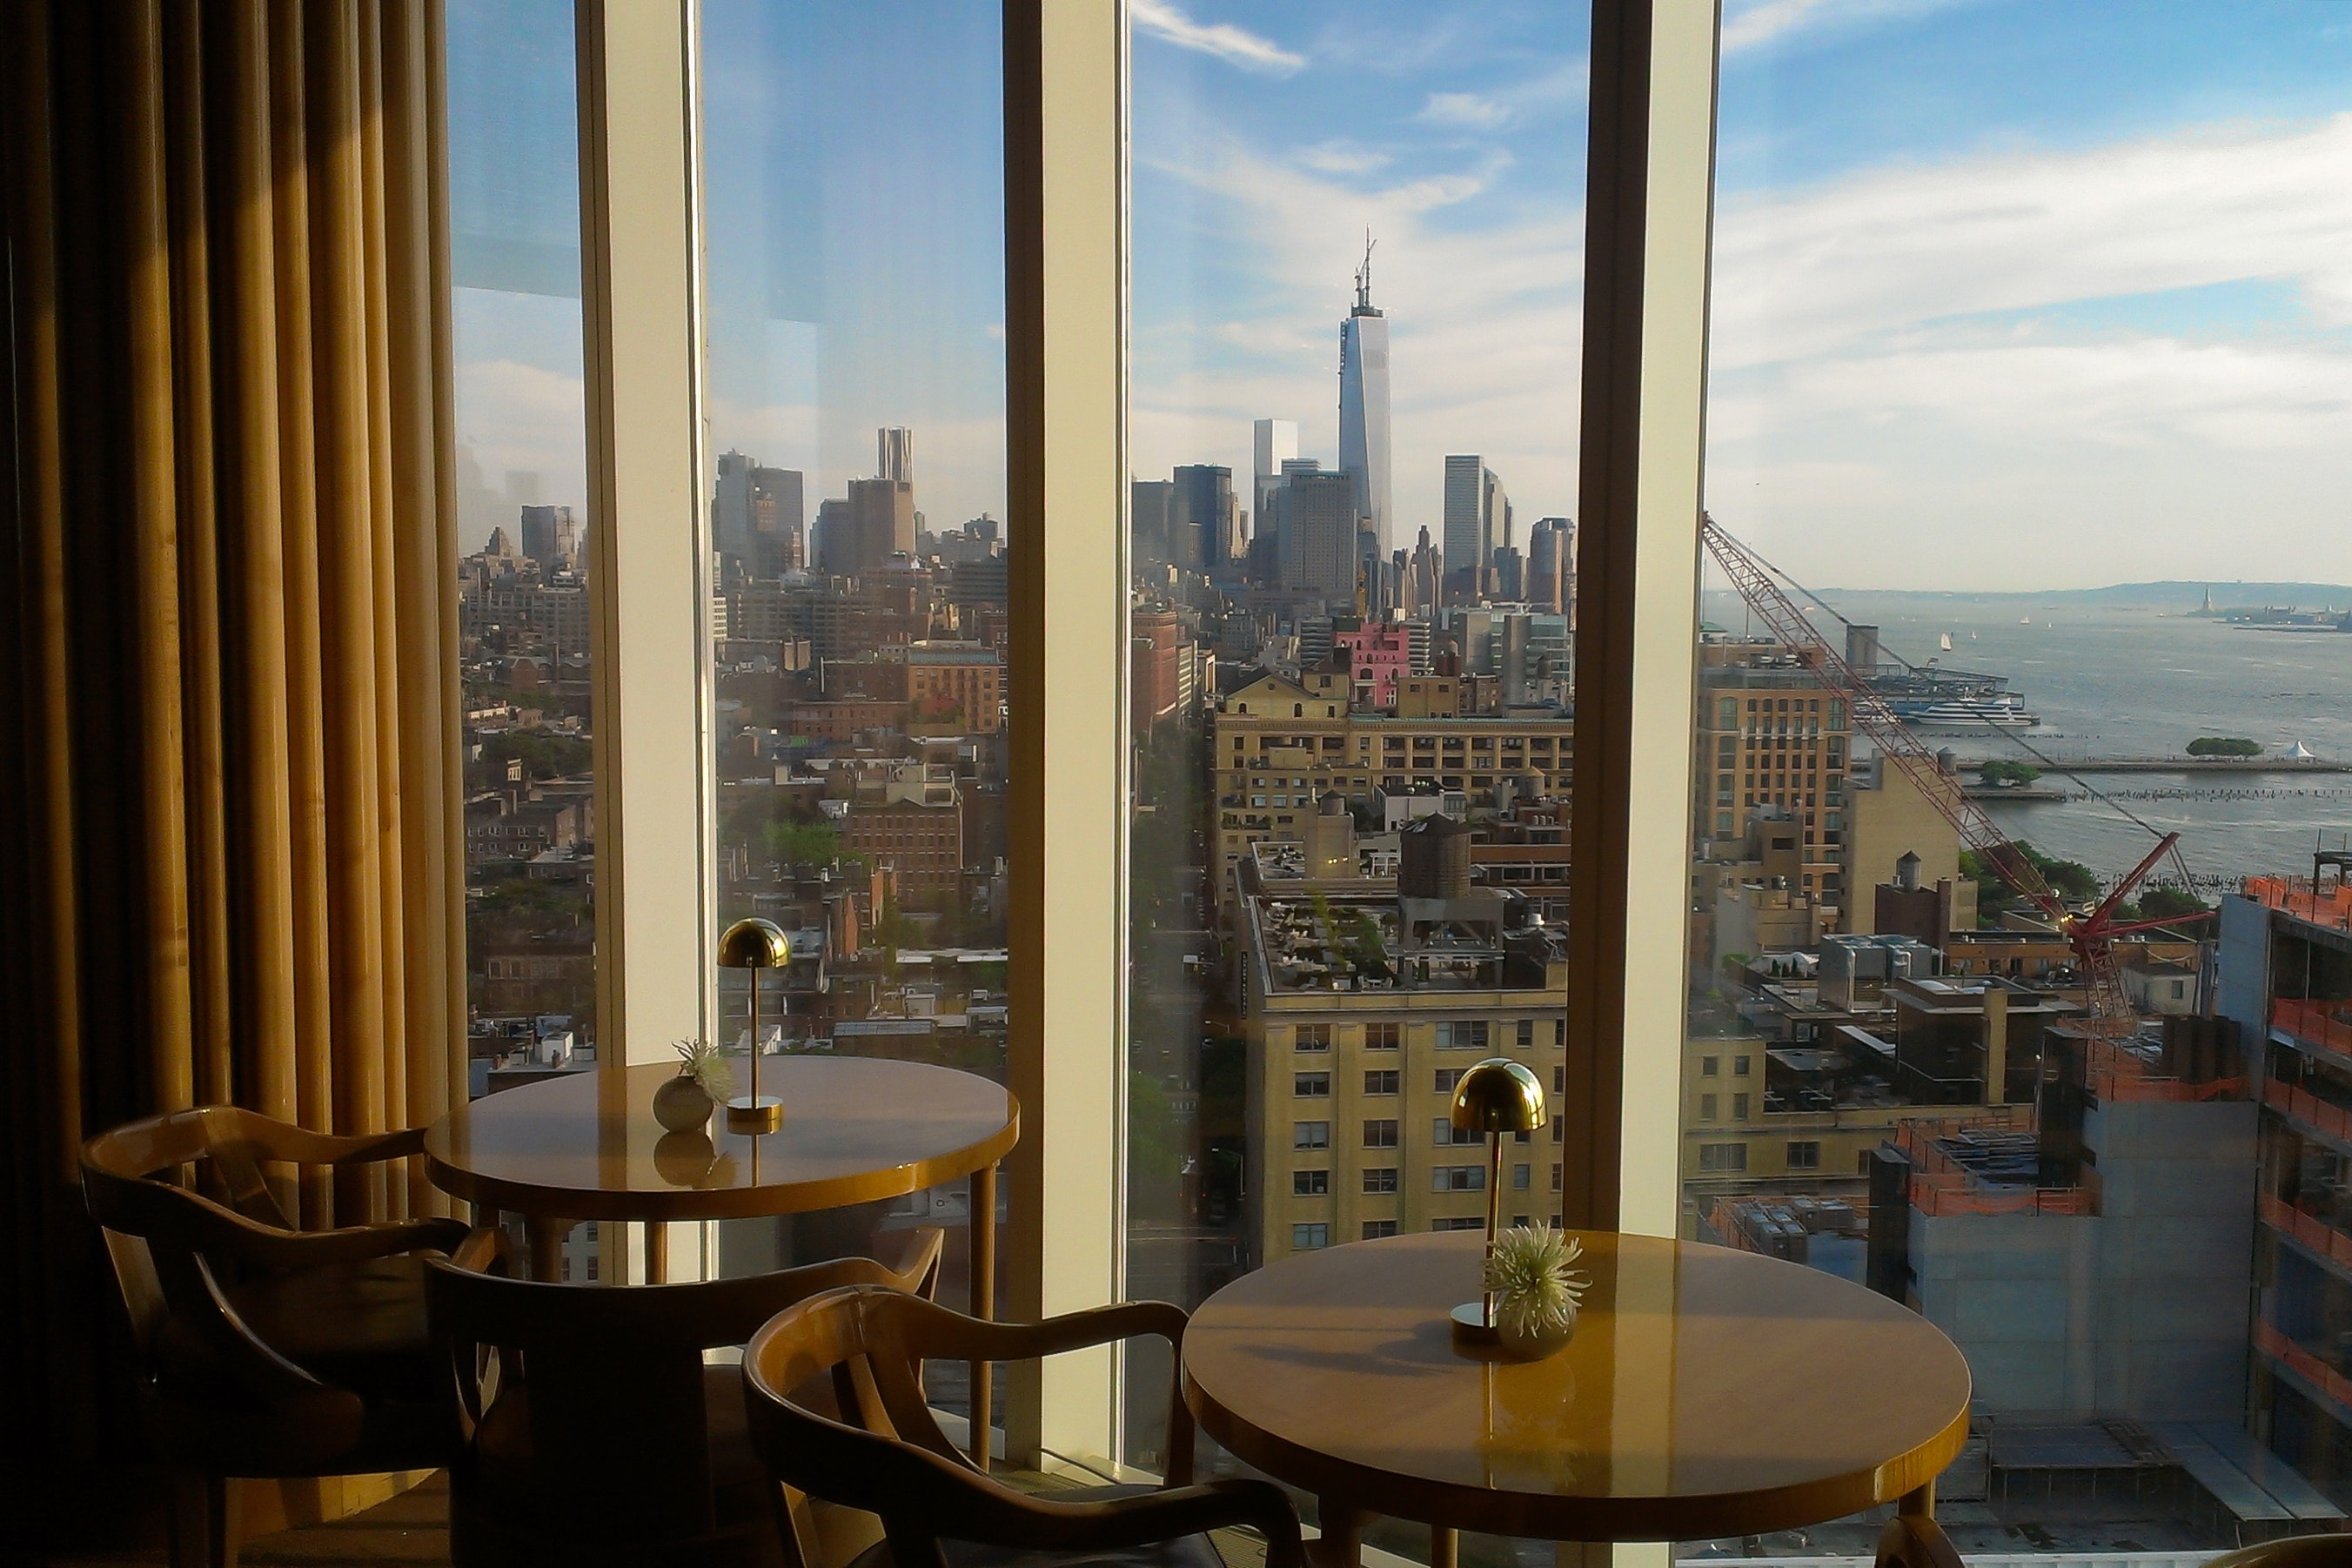 Top of the Standard at The Standard hotel is one of New York City's most exclusive restaurants and bars.